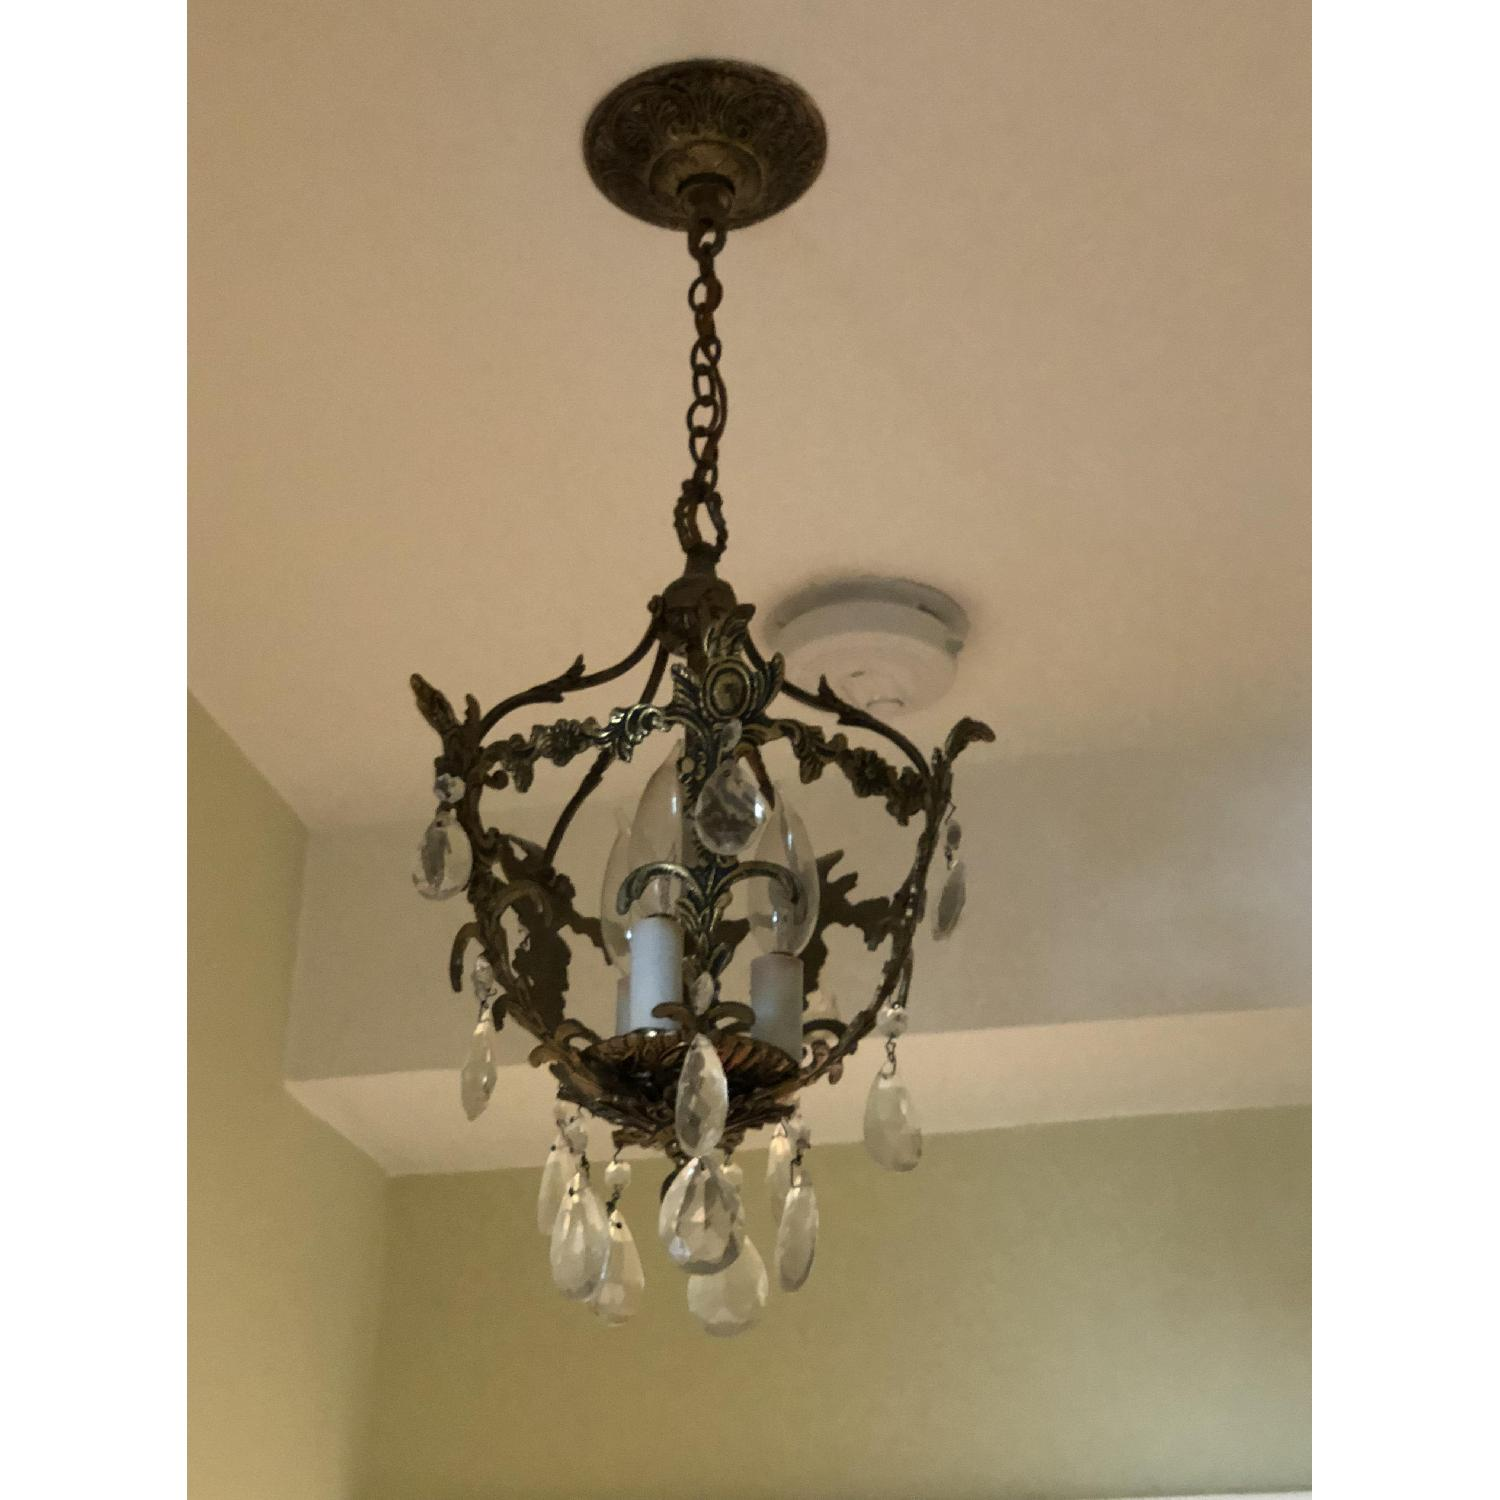 3-Light Candle Style Brass Light Fixture w/ Crystal Accents-1